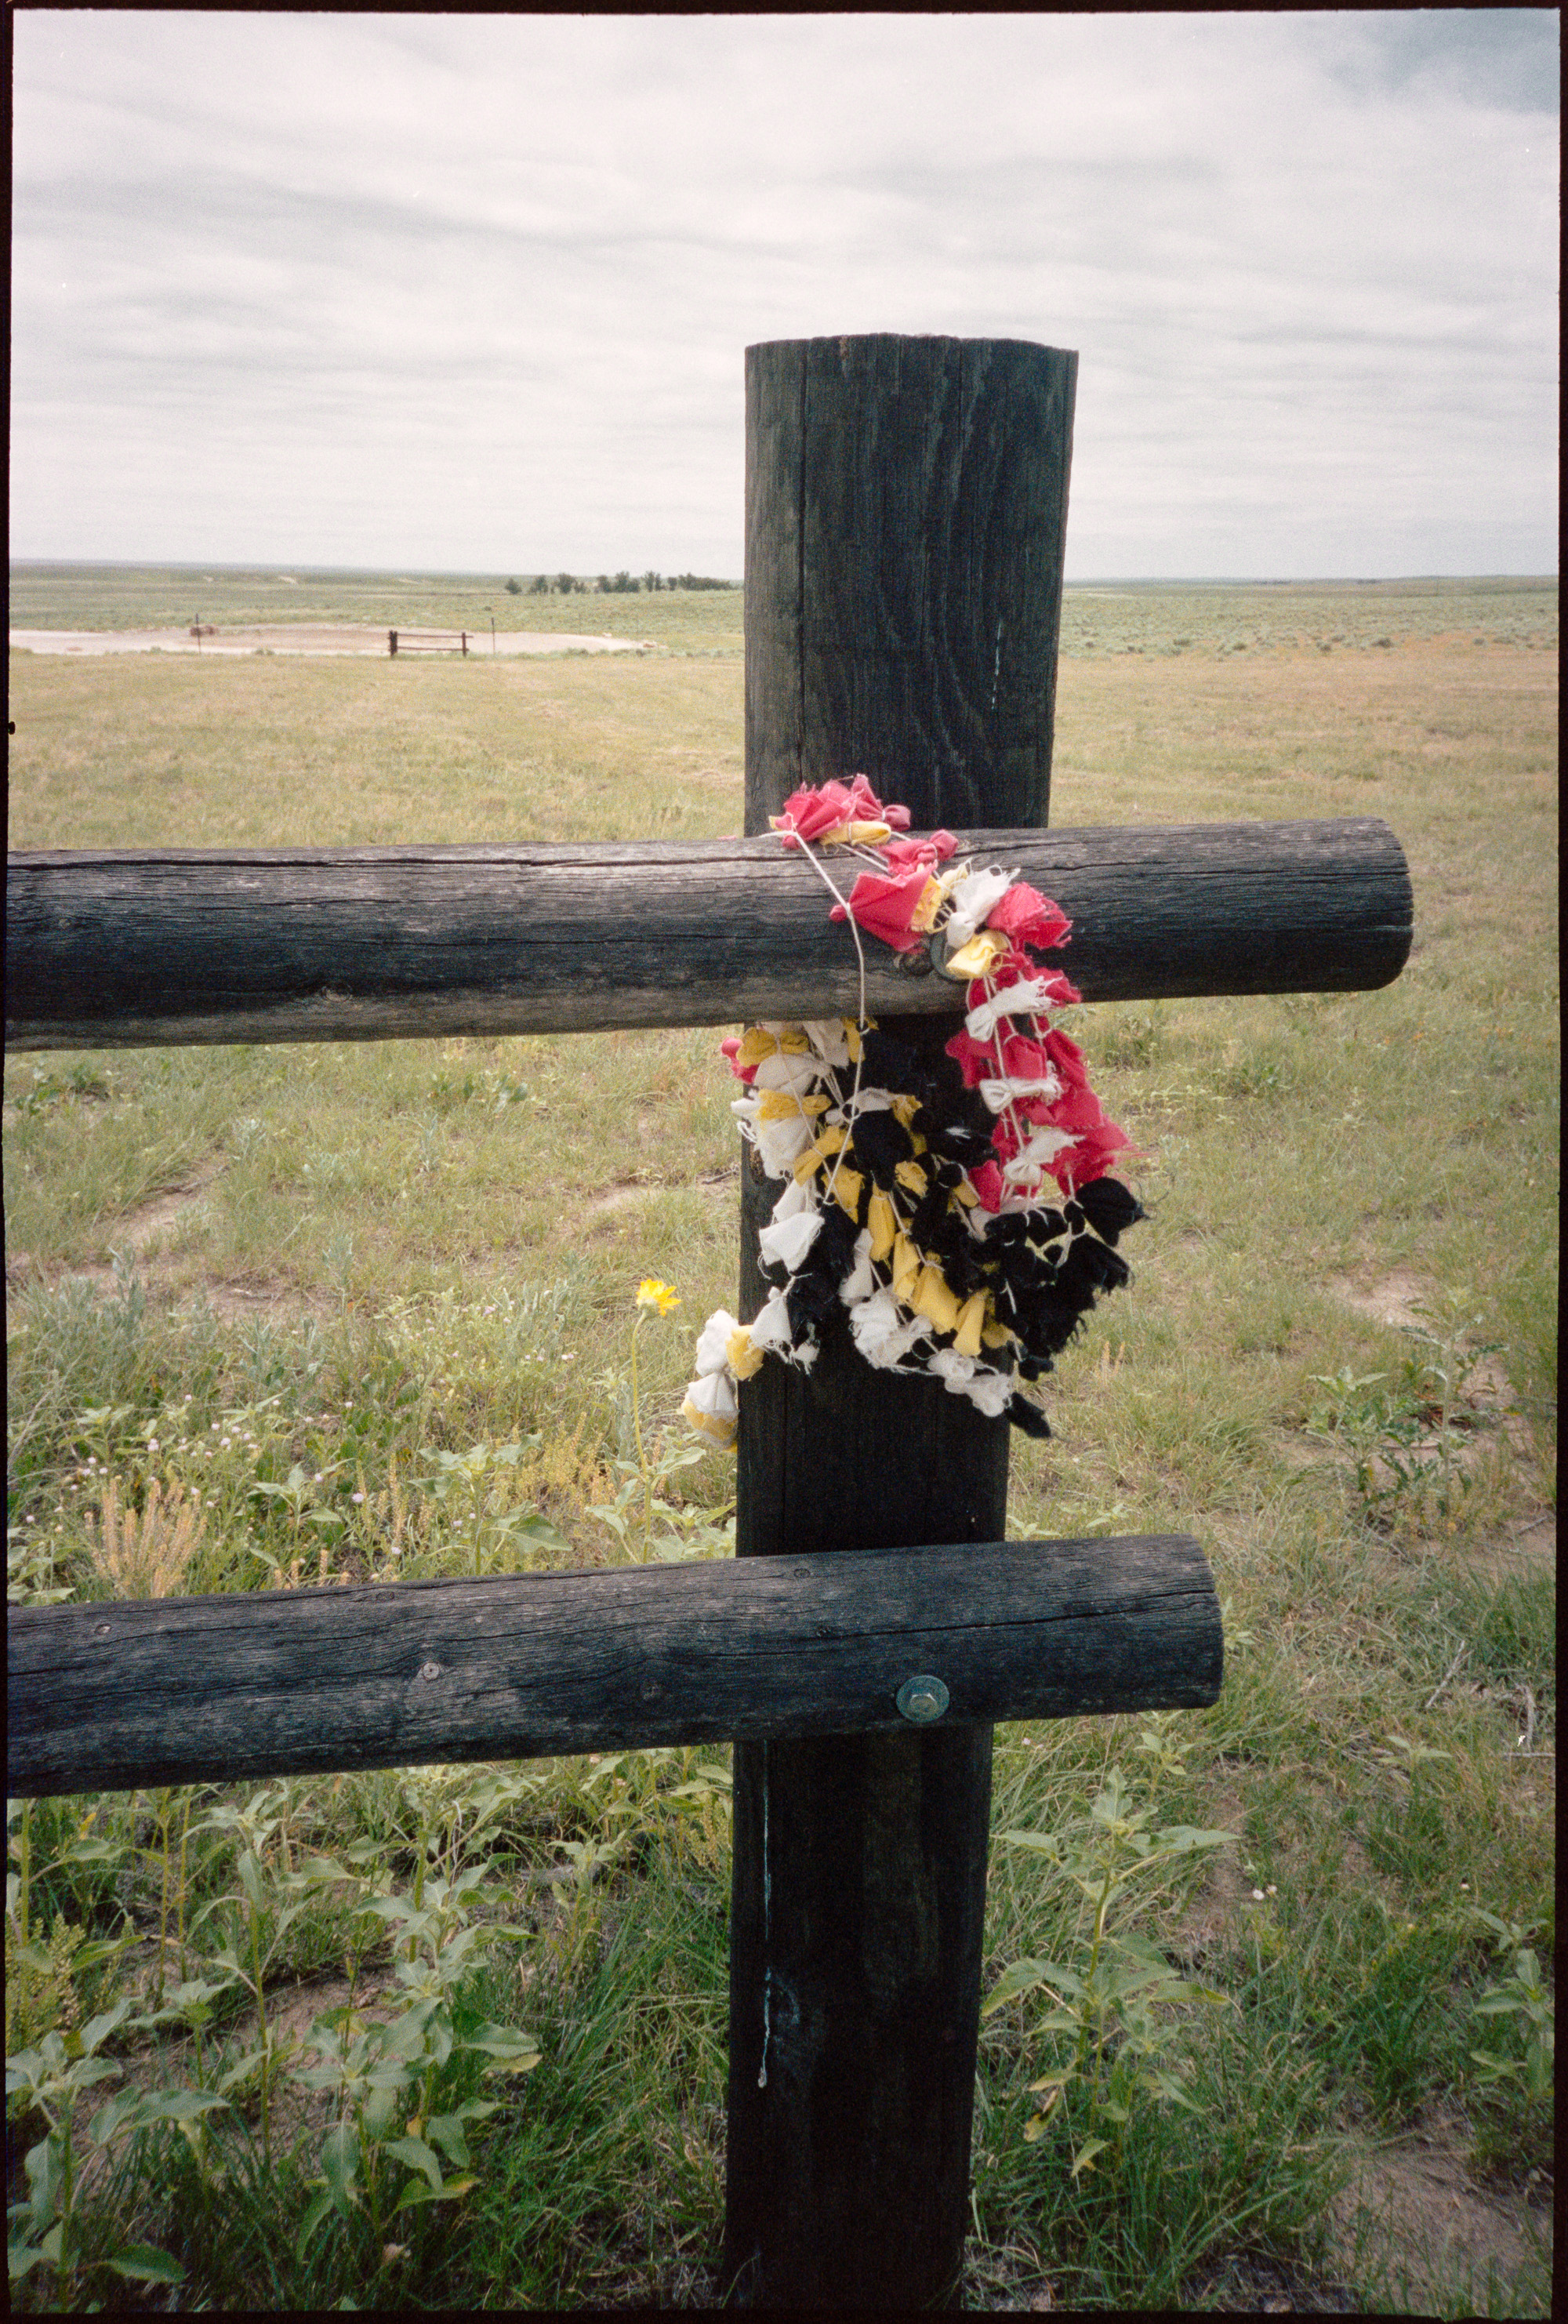 I highly, highly recommend visiting the Sand Creek Massacre National Historic Site if you get a chance. Extremely sobering and you'll likely have the whole place to yourself with options for free private tours by the park rangers.